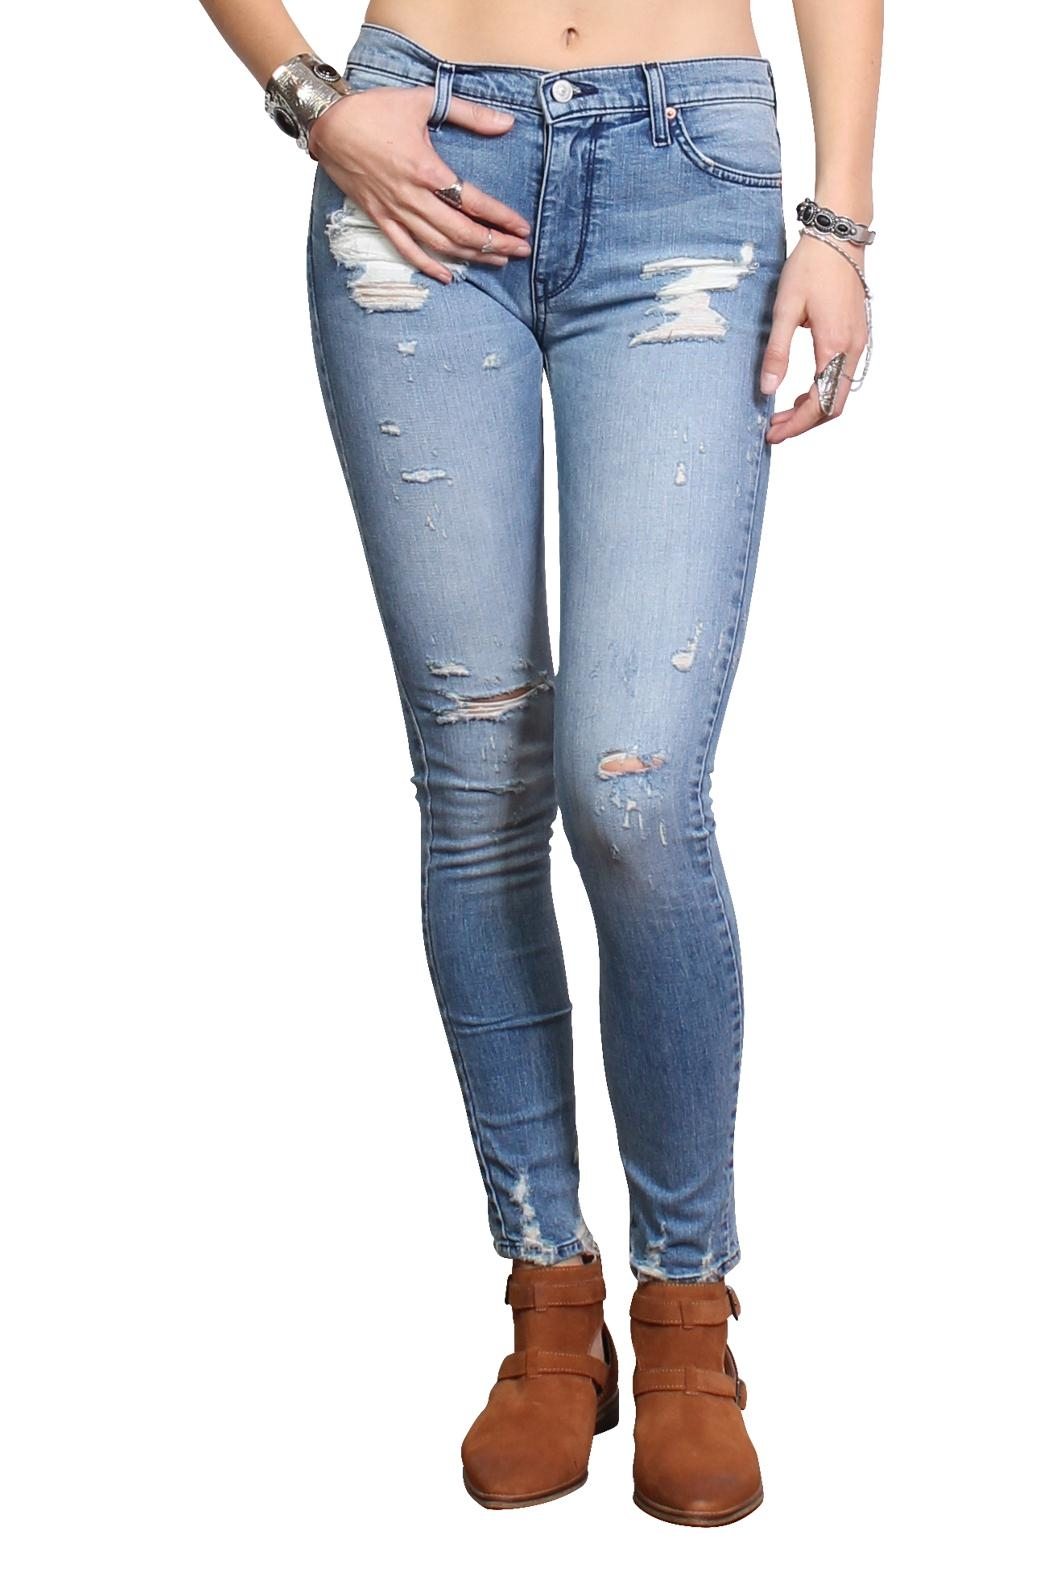 Michelle by Commune London Skinny Jeans - Main Image